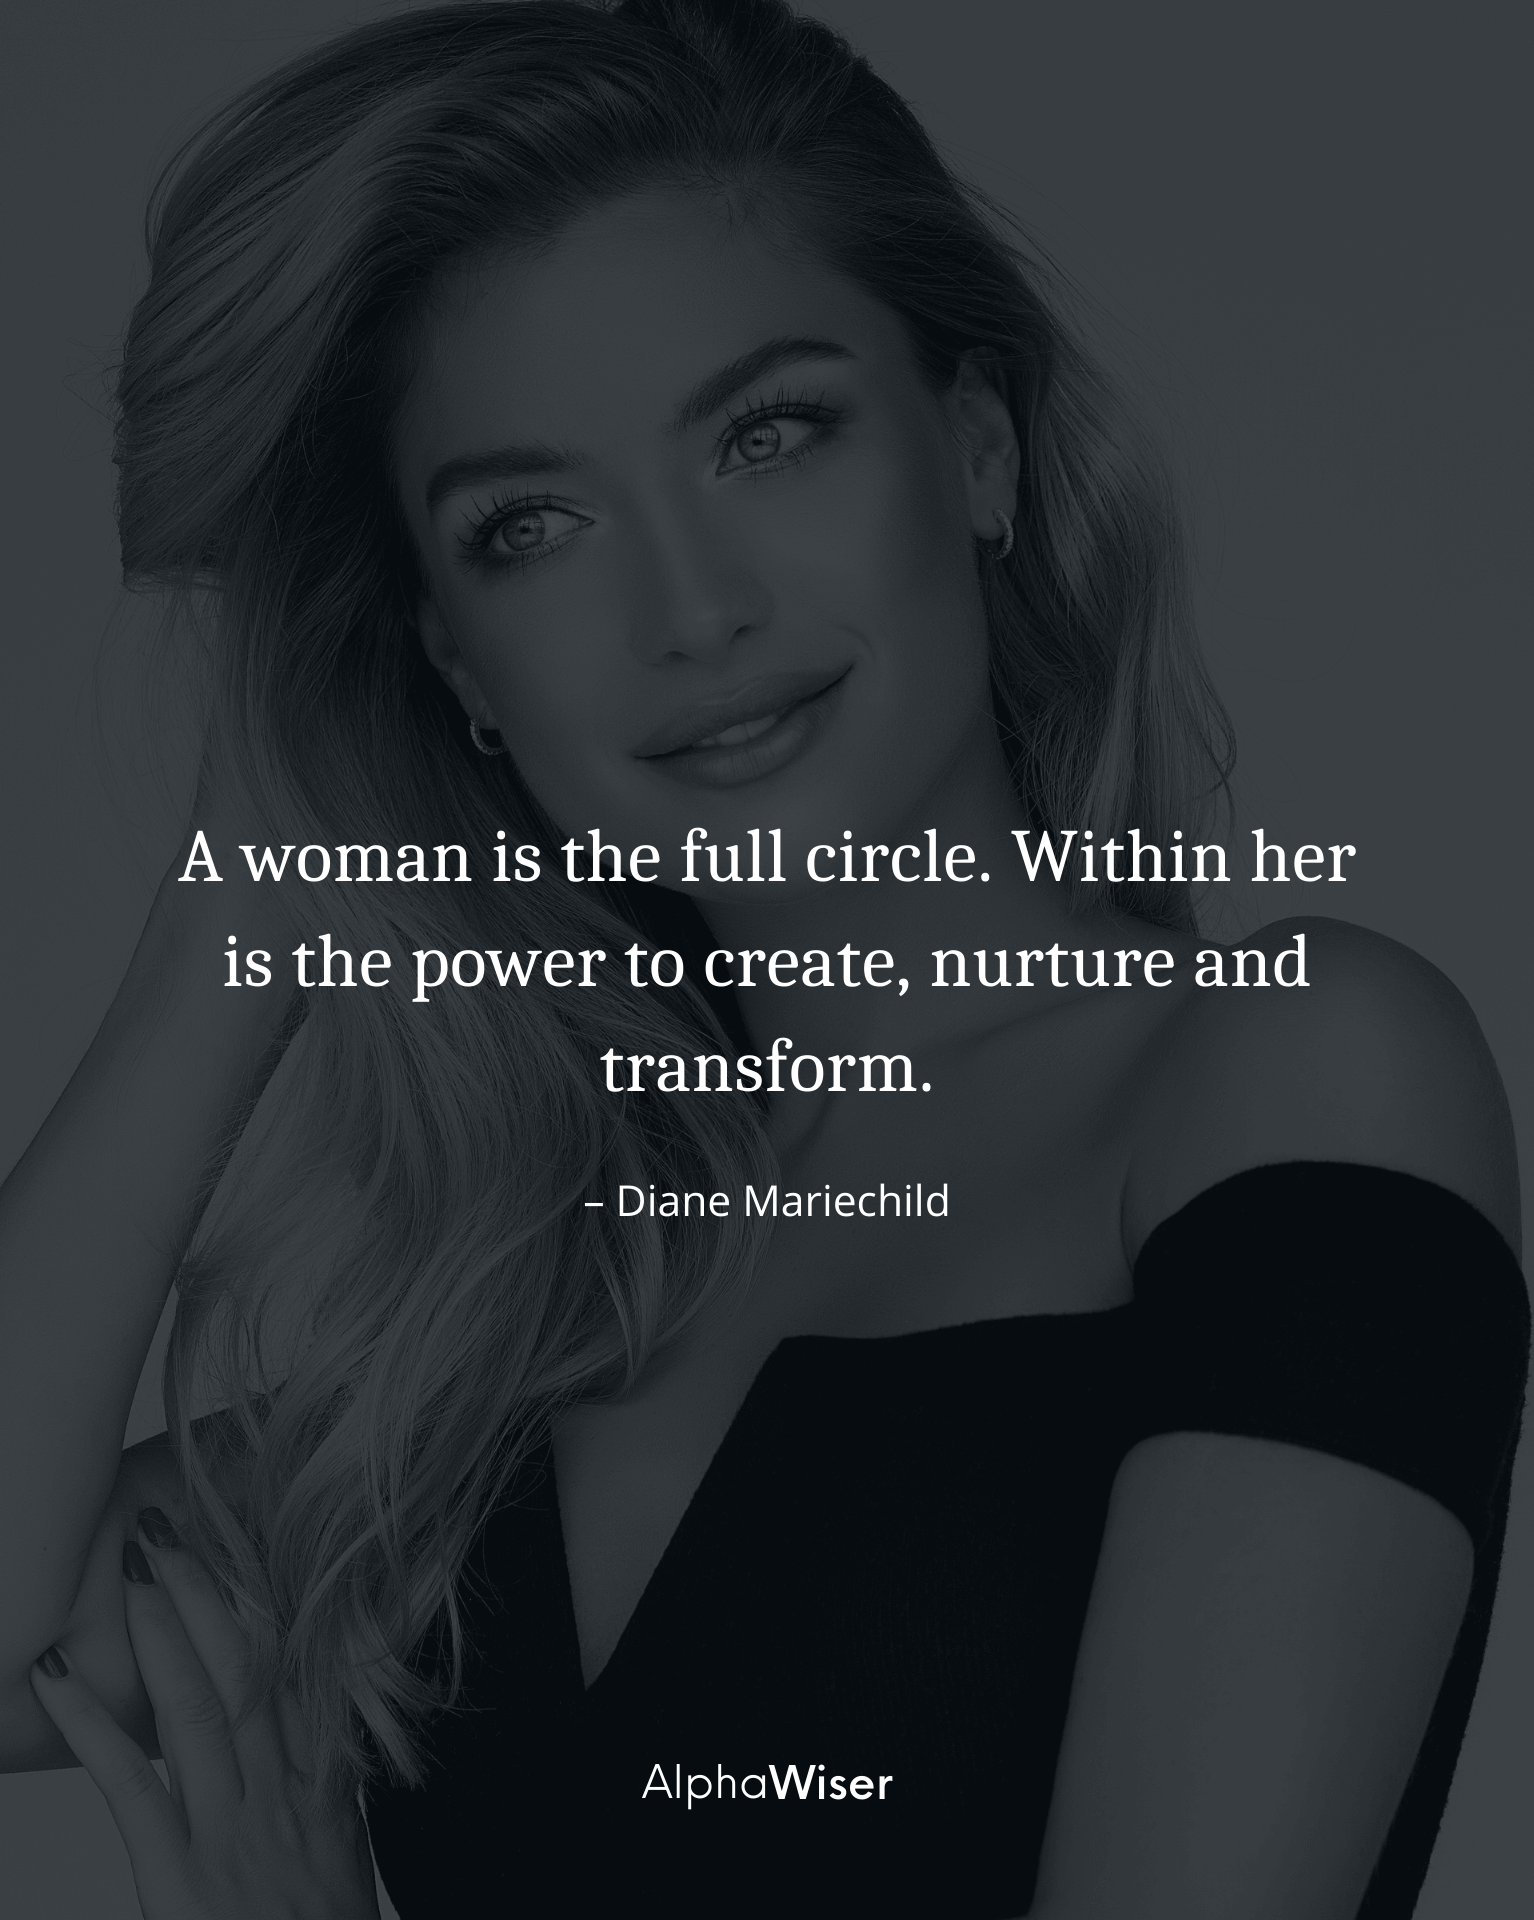 A woman is the full circle. Within her is the power to create, nurture and transform.